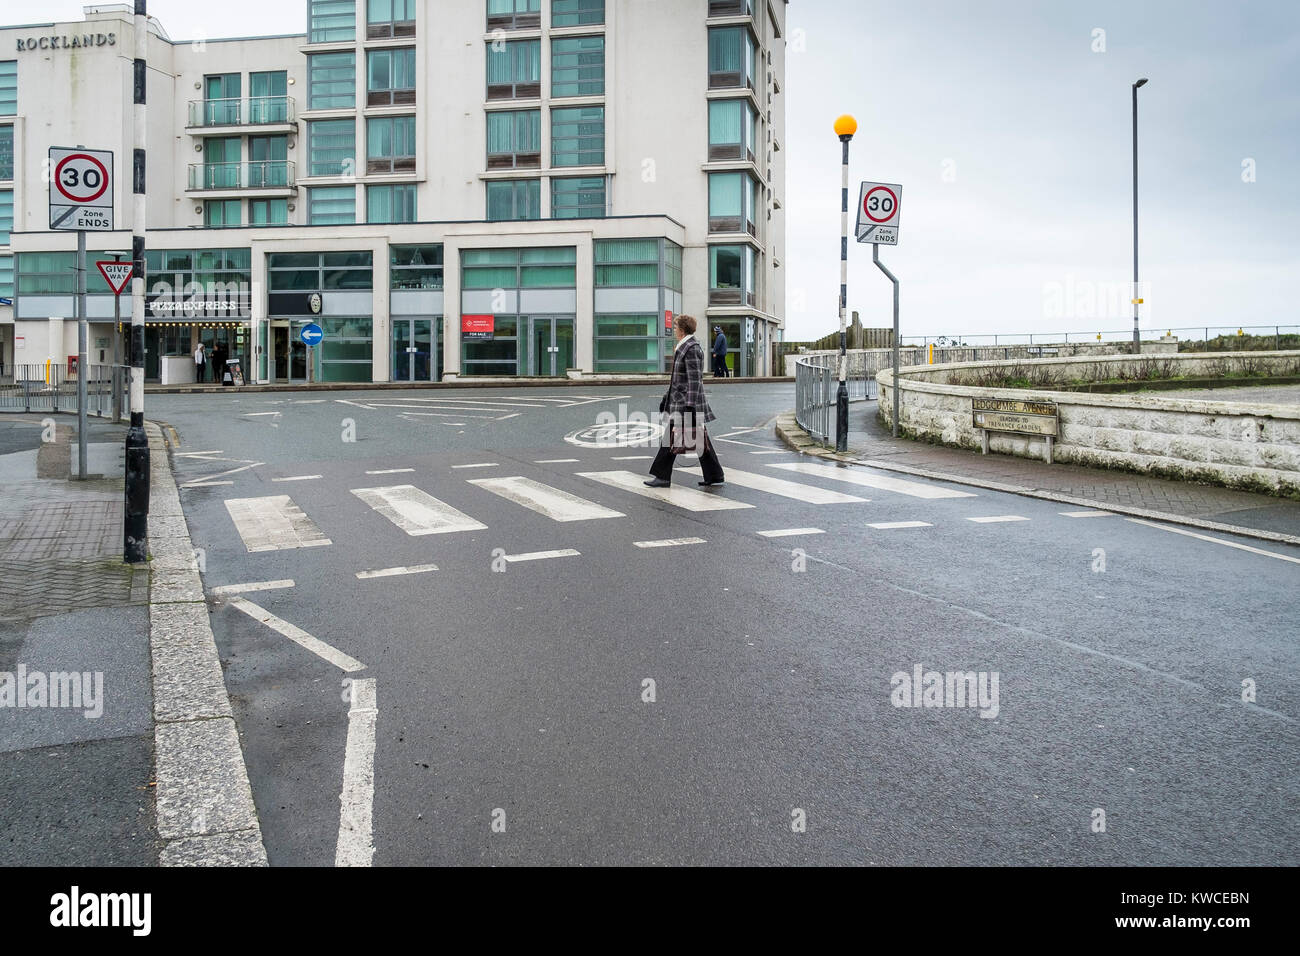 Newquay street scene - a woman walking across a zebra crossing in the quiet season in Newquay Town Centre. - Stock Image